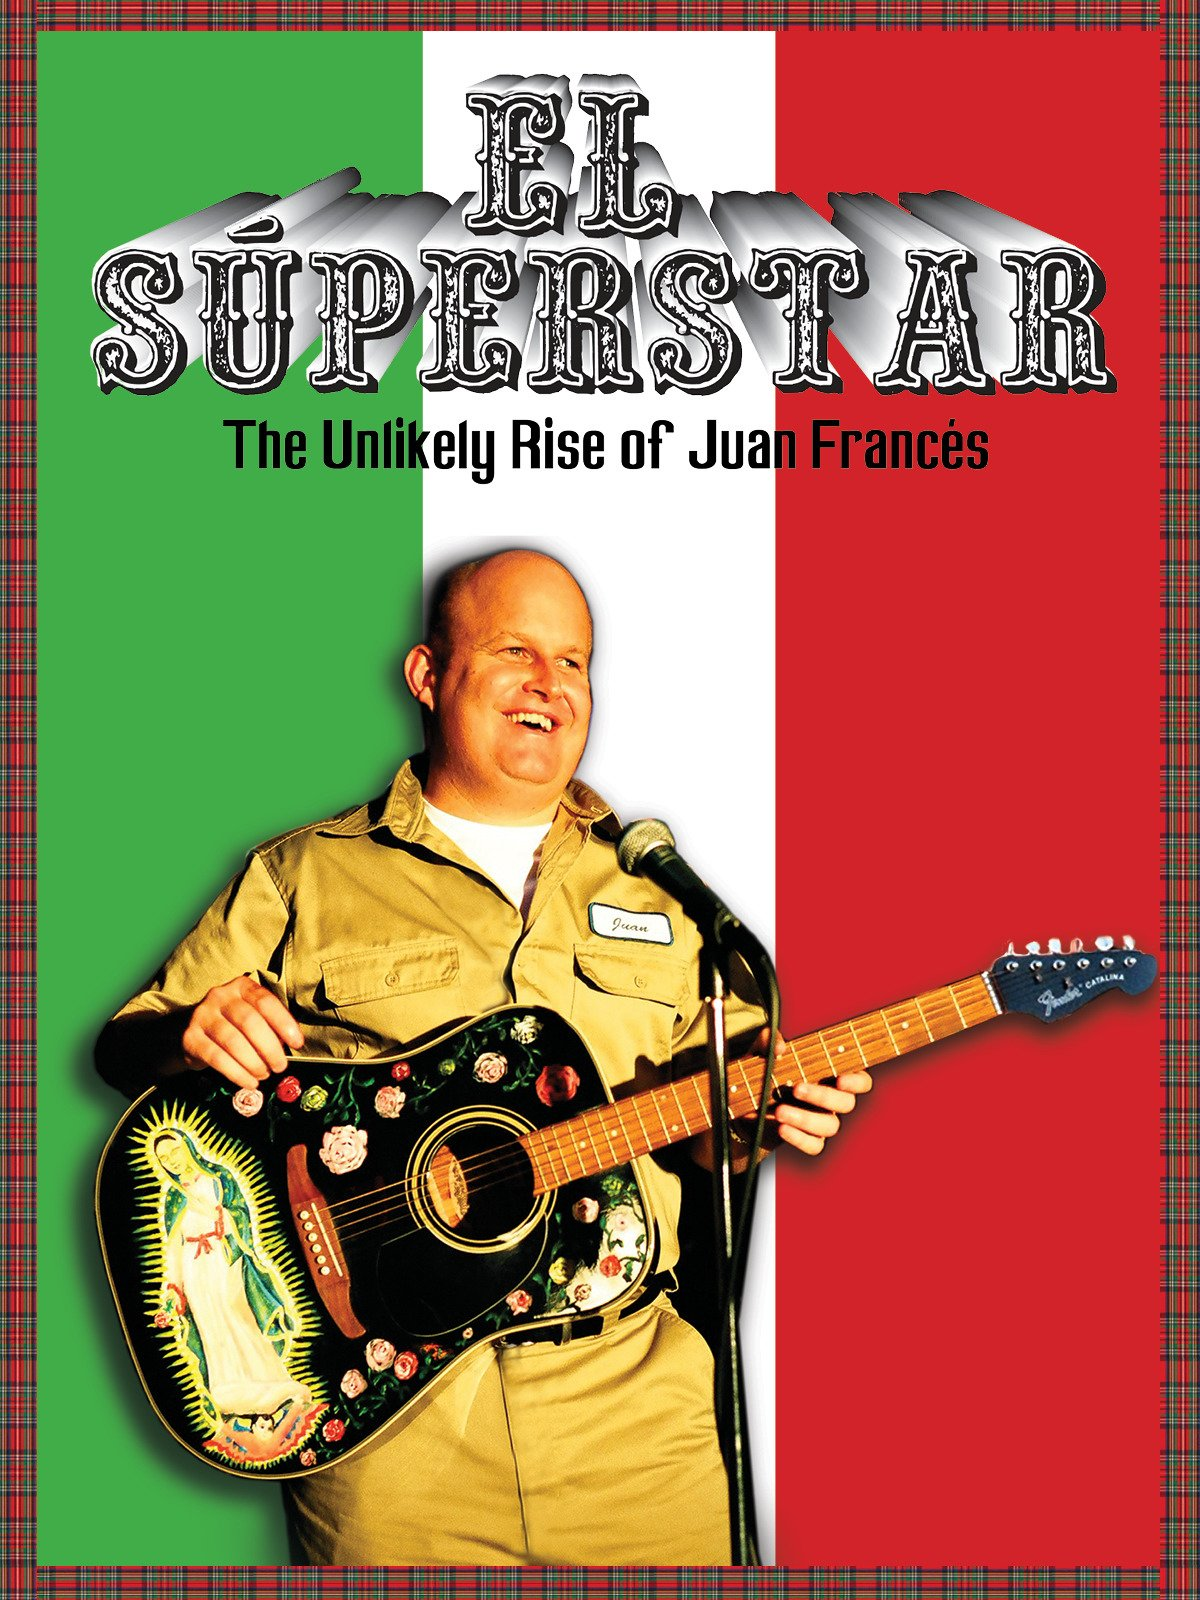 El Superstar: The Unlikely Rise of Juan Frances